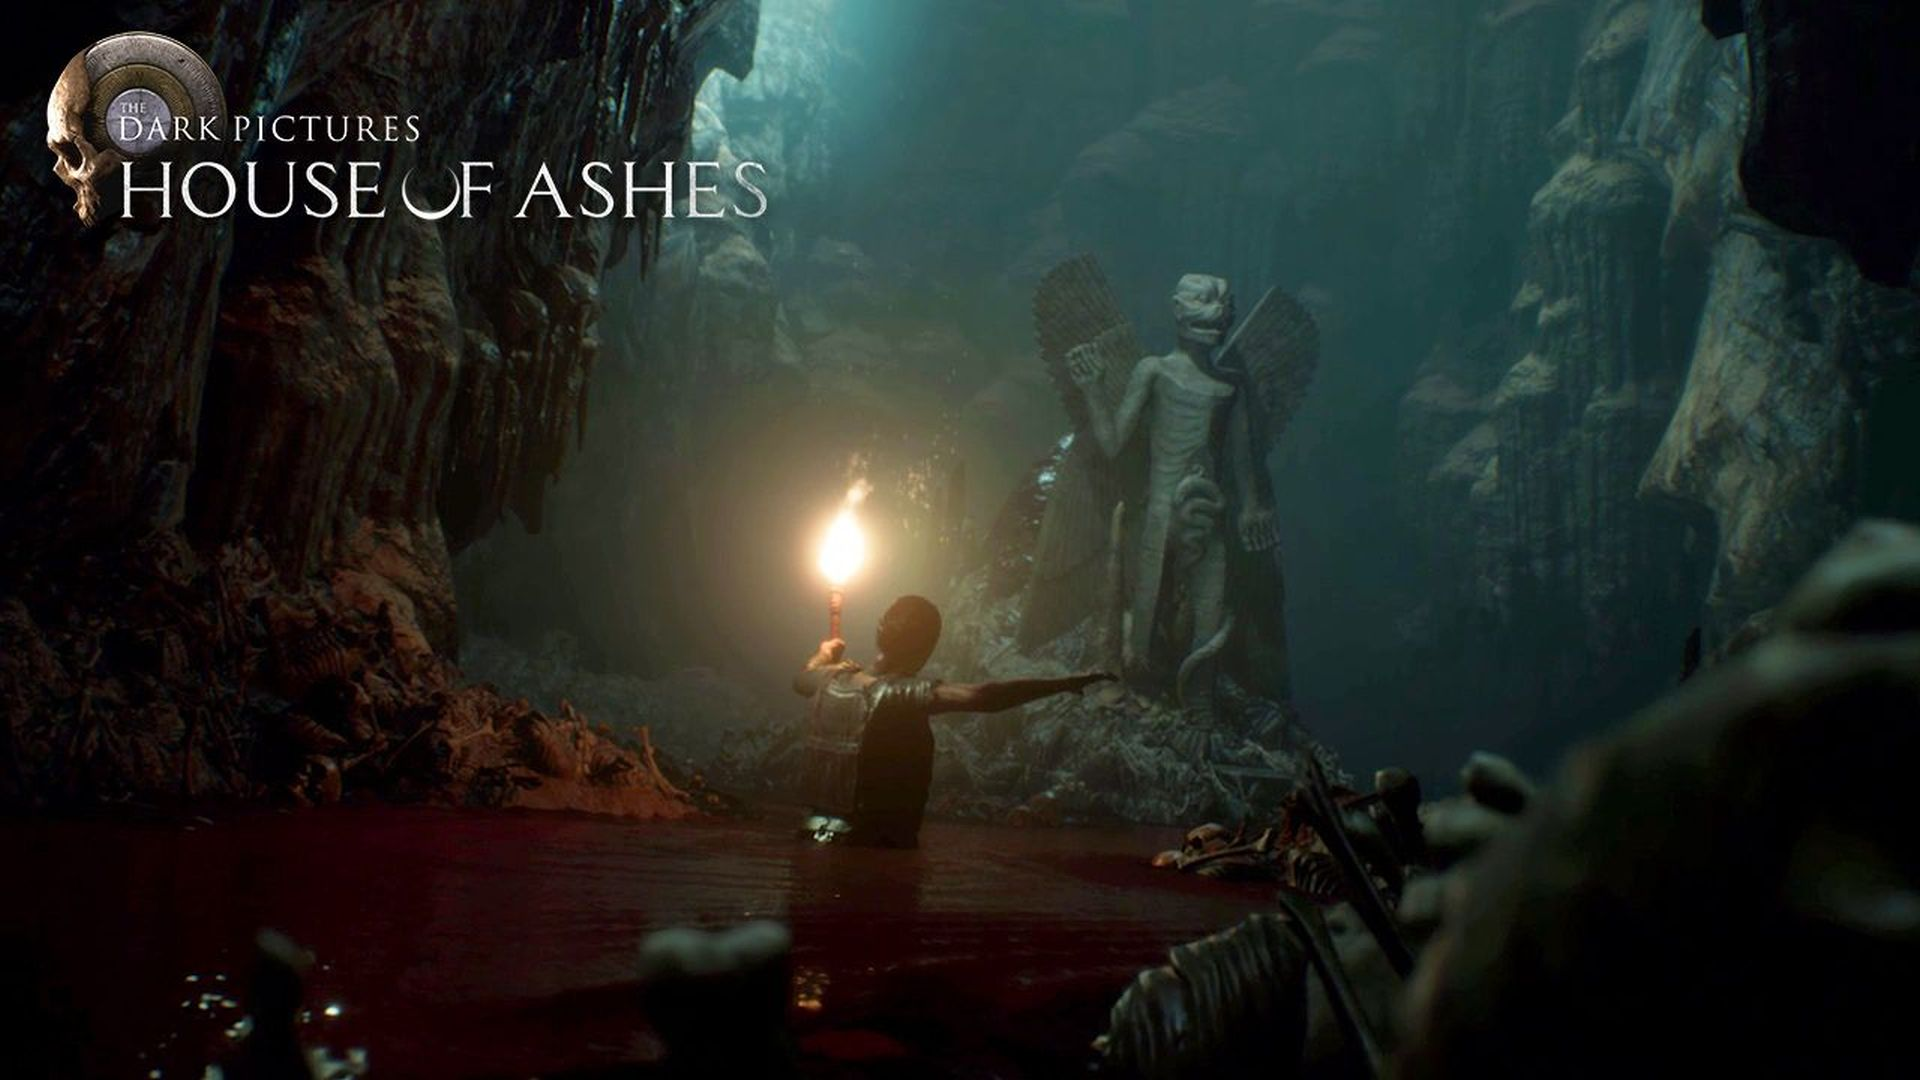 The Dark Pictures Anthology - House of Ashes